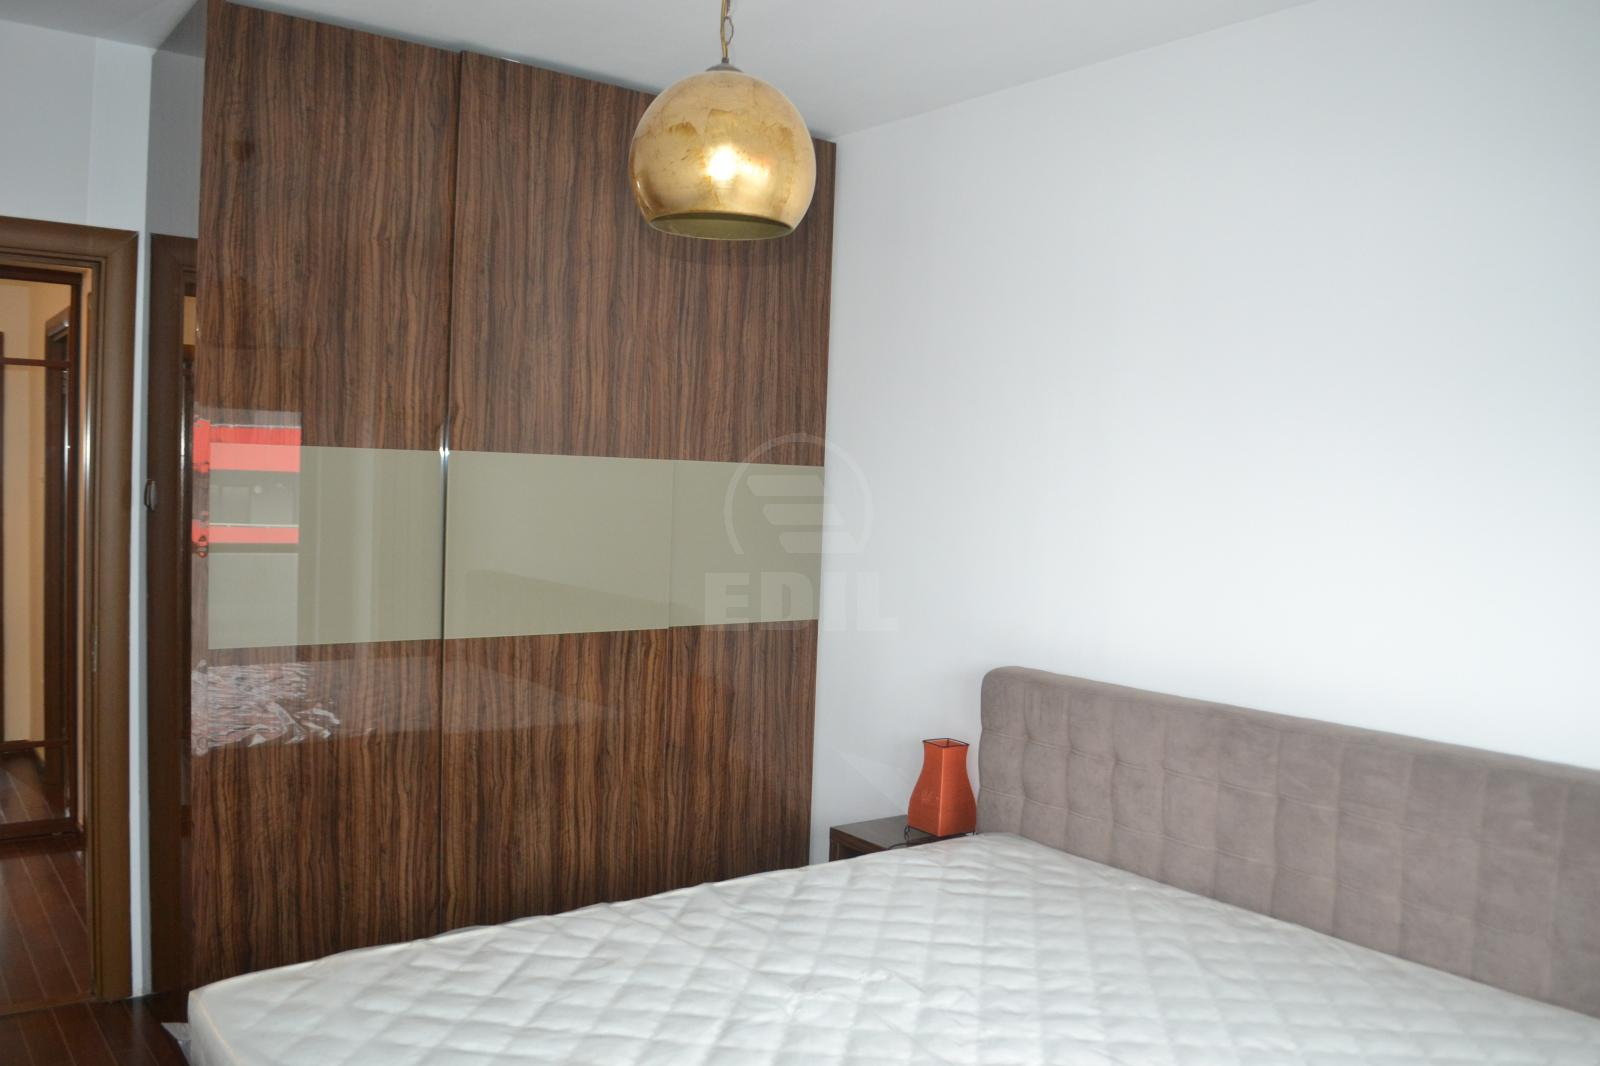 Apartment for rent 3 rooms, APCJ271208-7